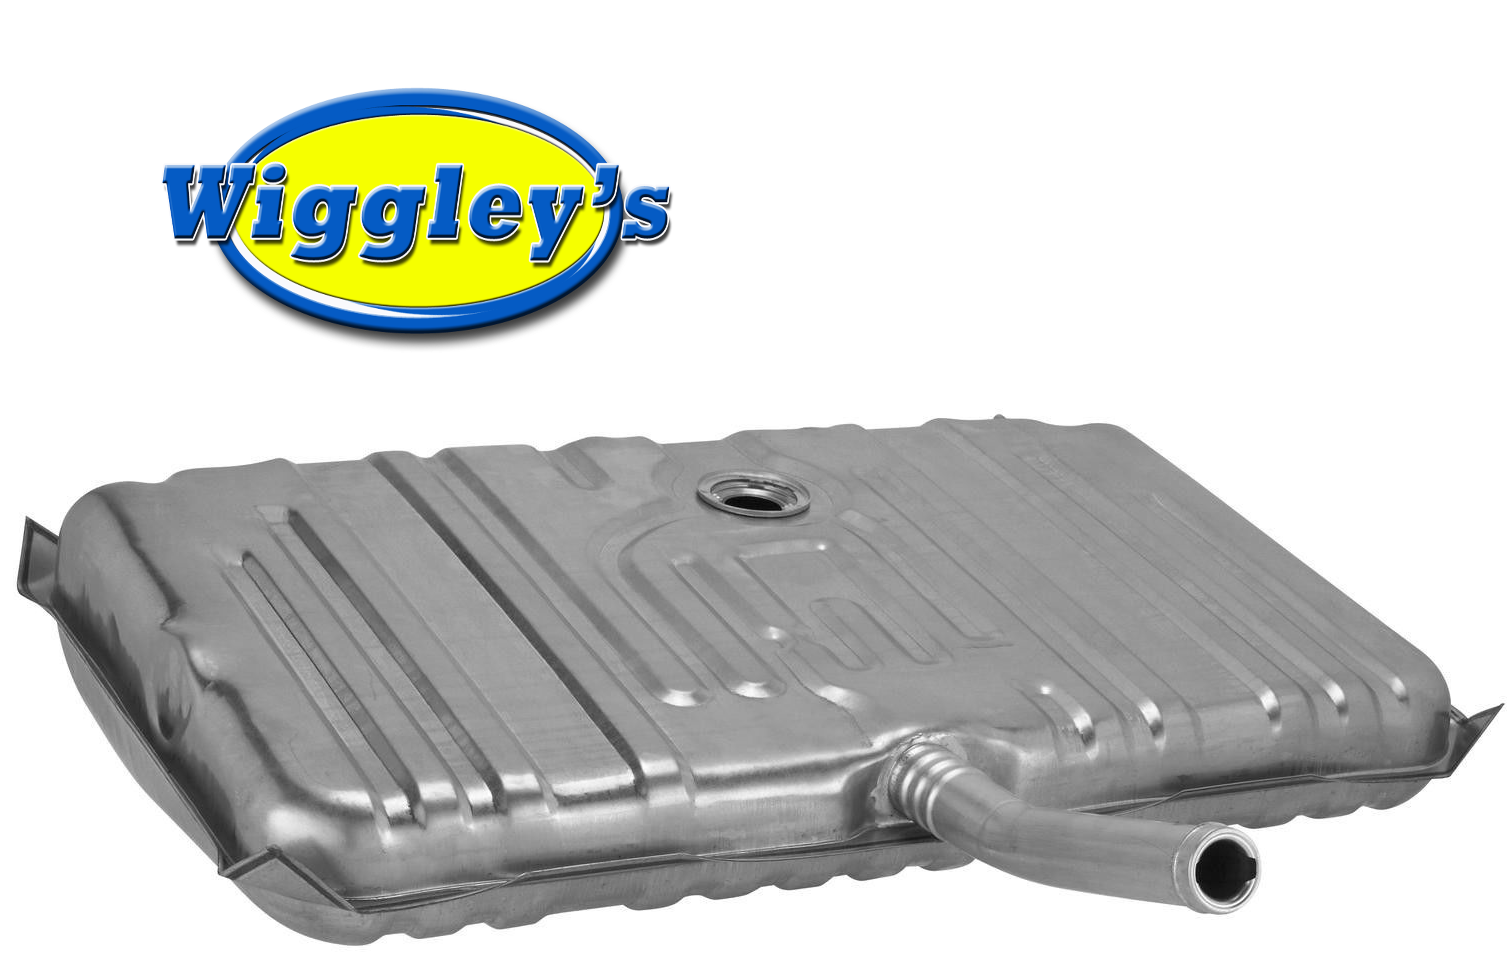 STAINLESS STEEL TANK IGM34S-SS FOR 70 OLDS 442, CUTLASS, F85 7.5L-V8 w/o E.E.C.